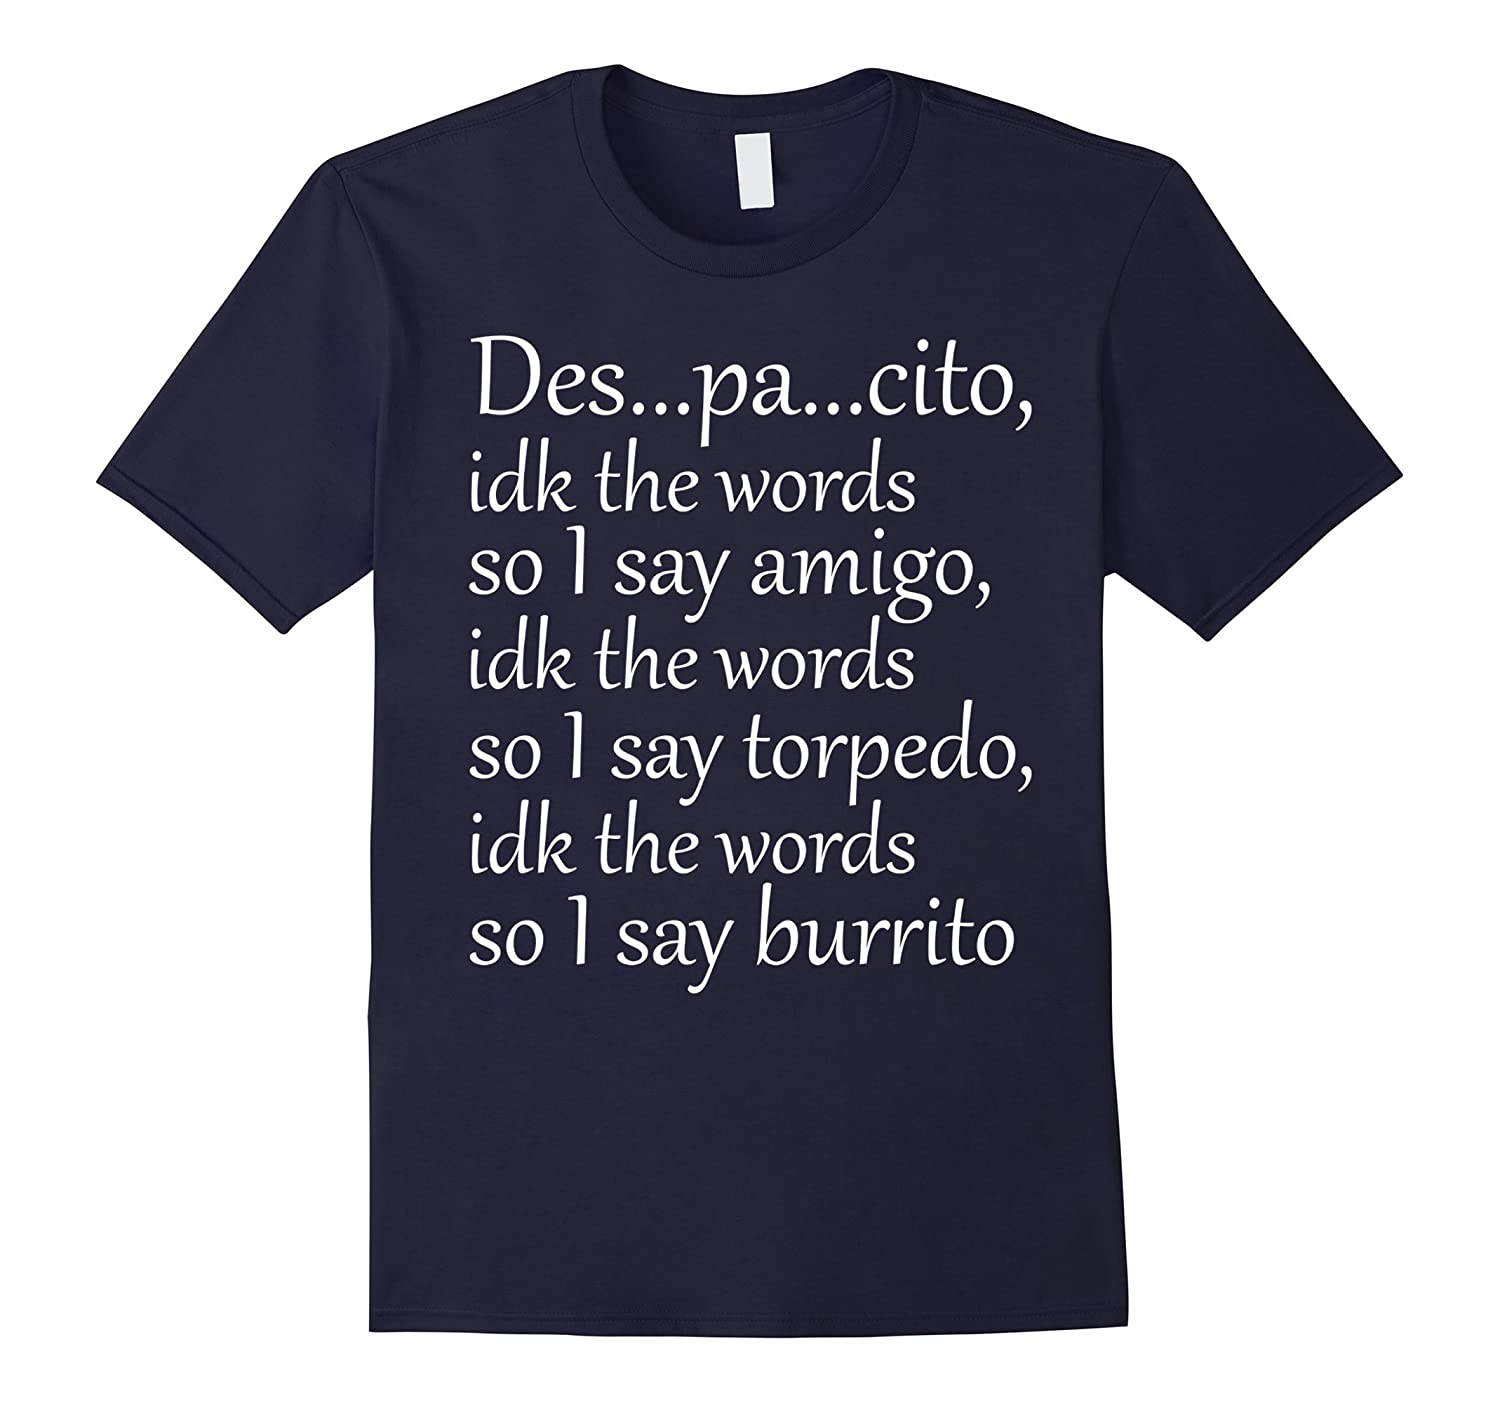 Despacito idk the words T shirt - Des Pa Cito Tshirt-BN